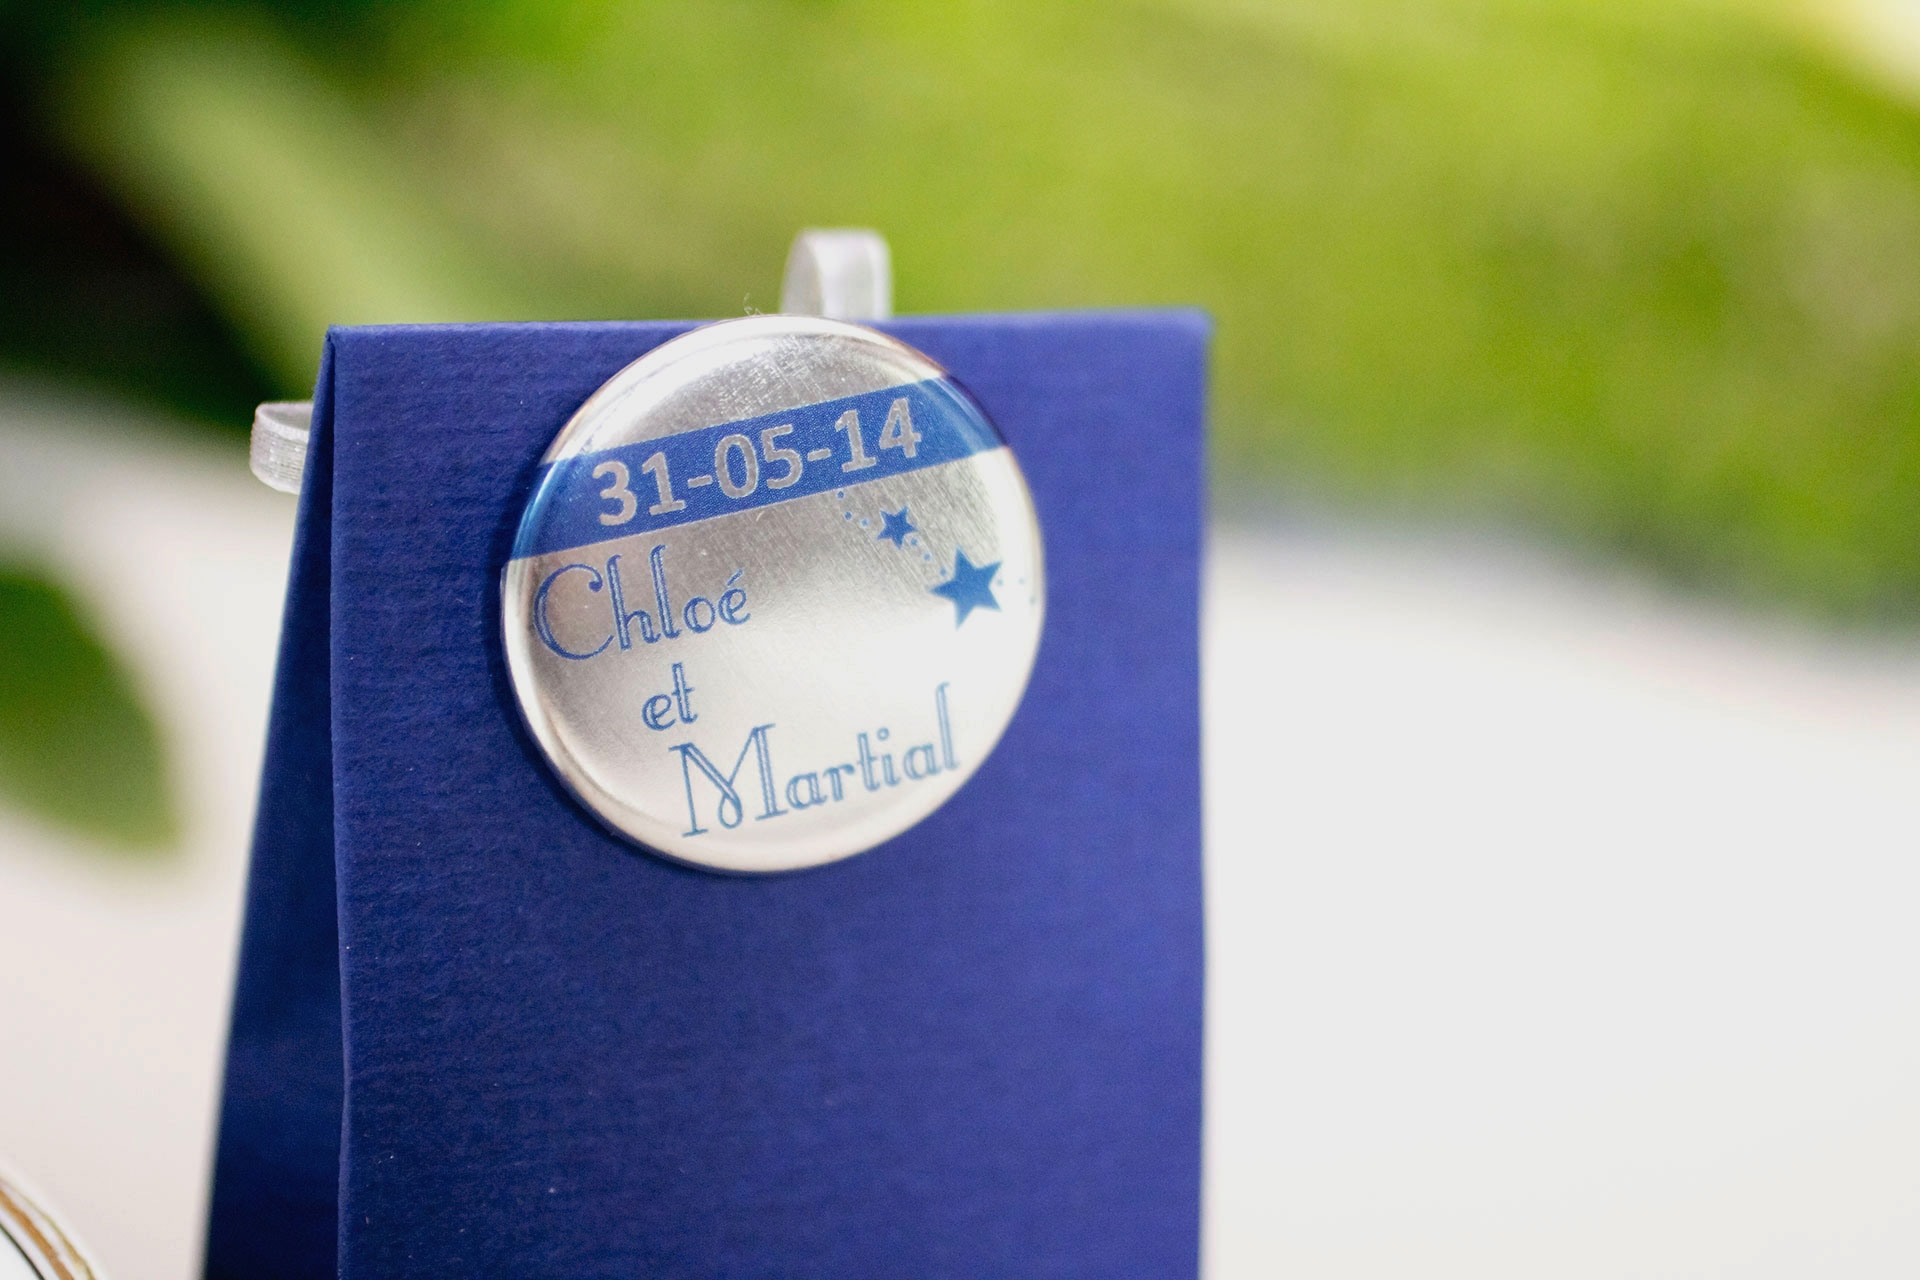 particuliers-mariages-oui-chloemartial-01